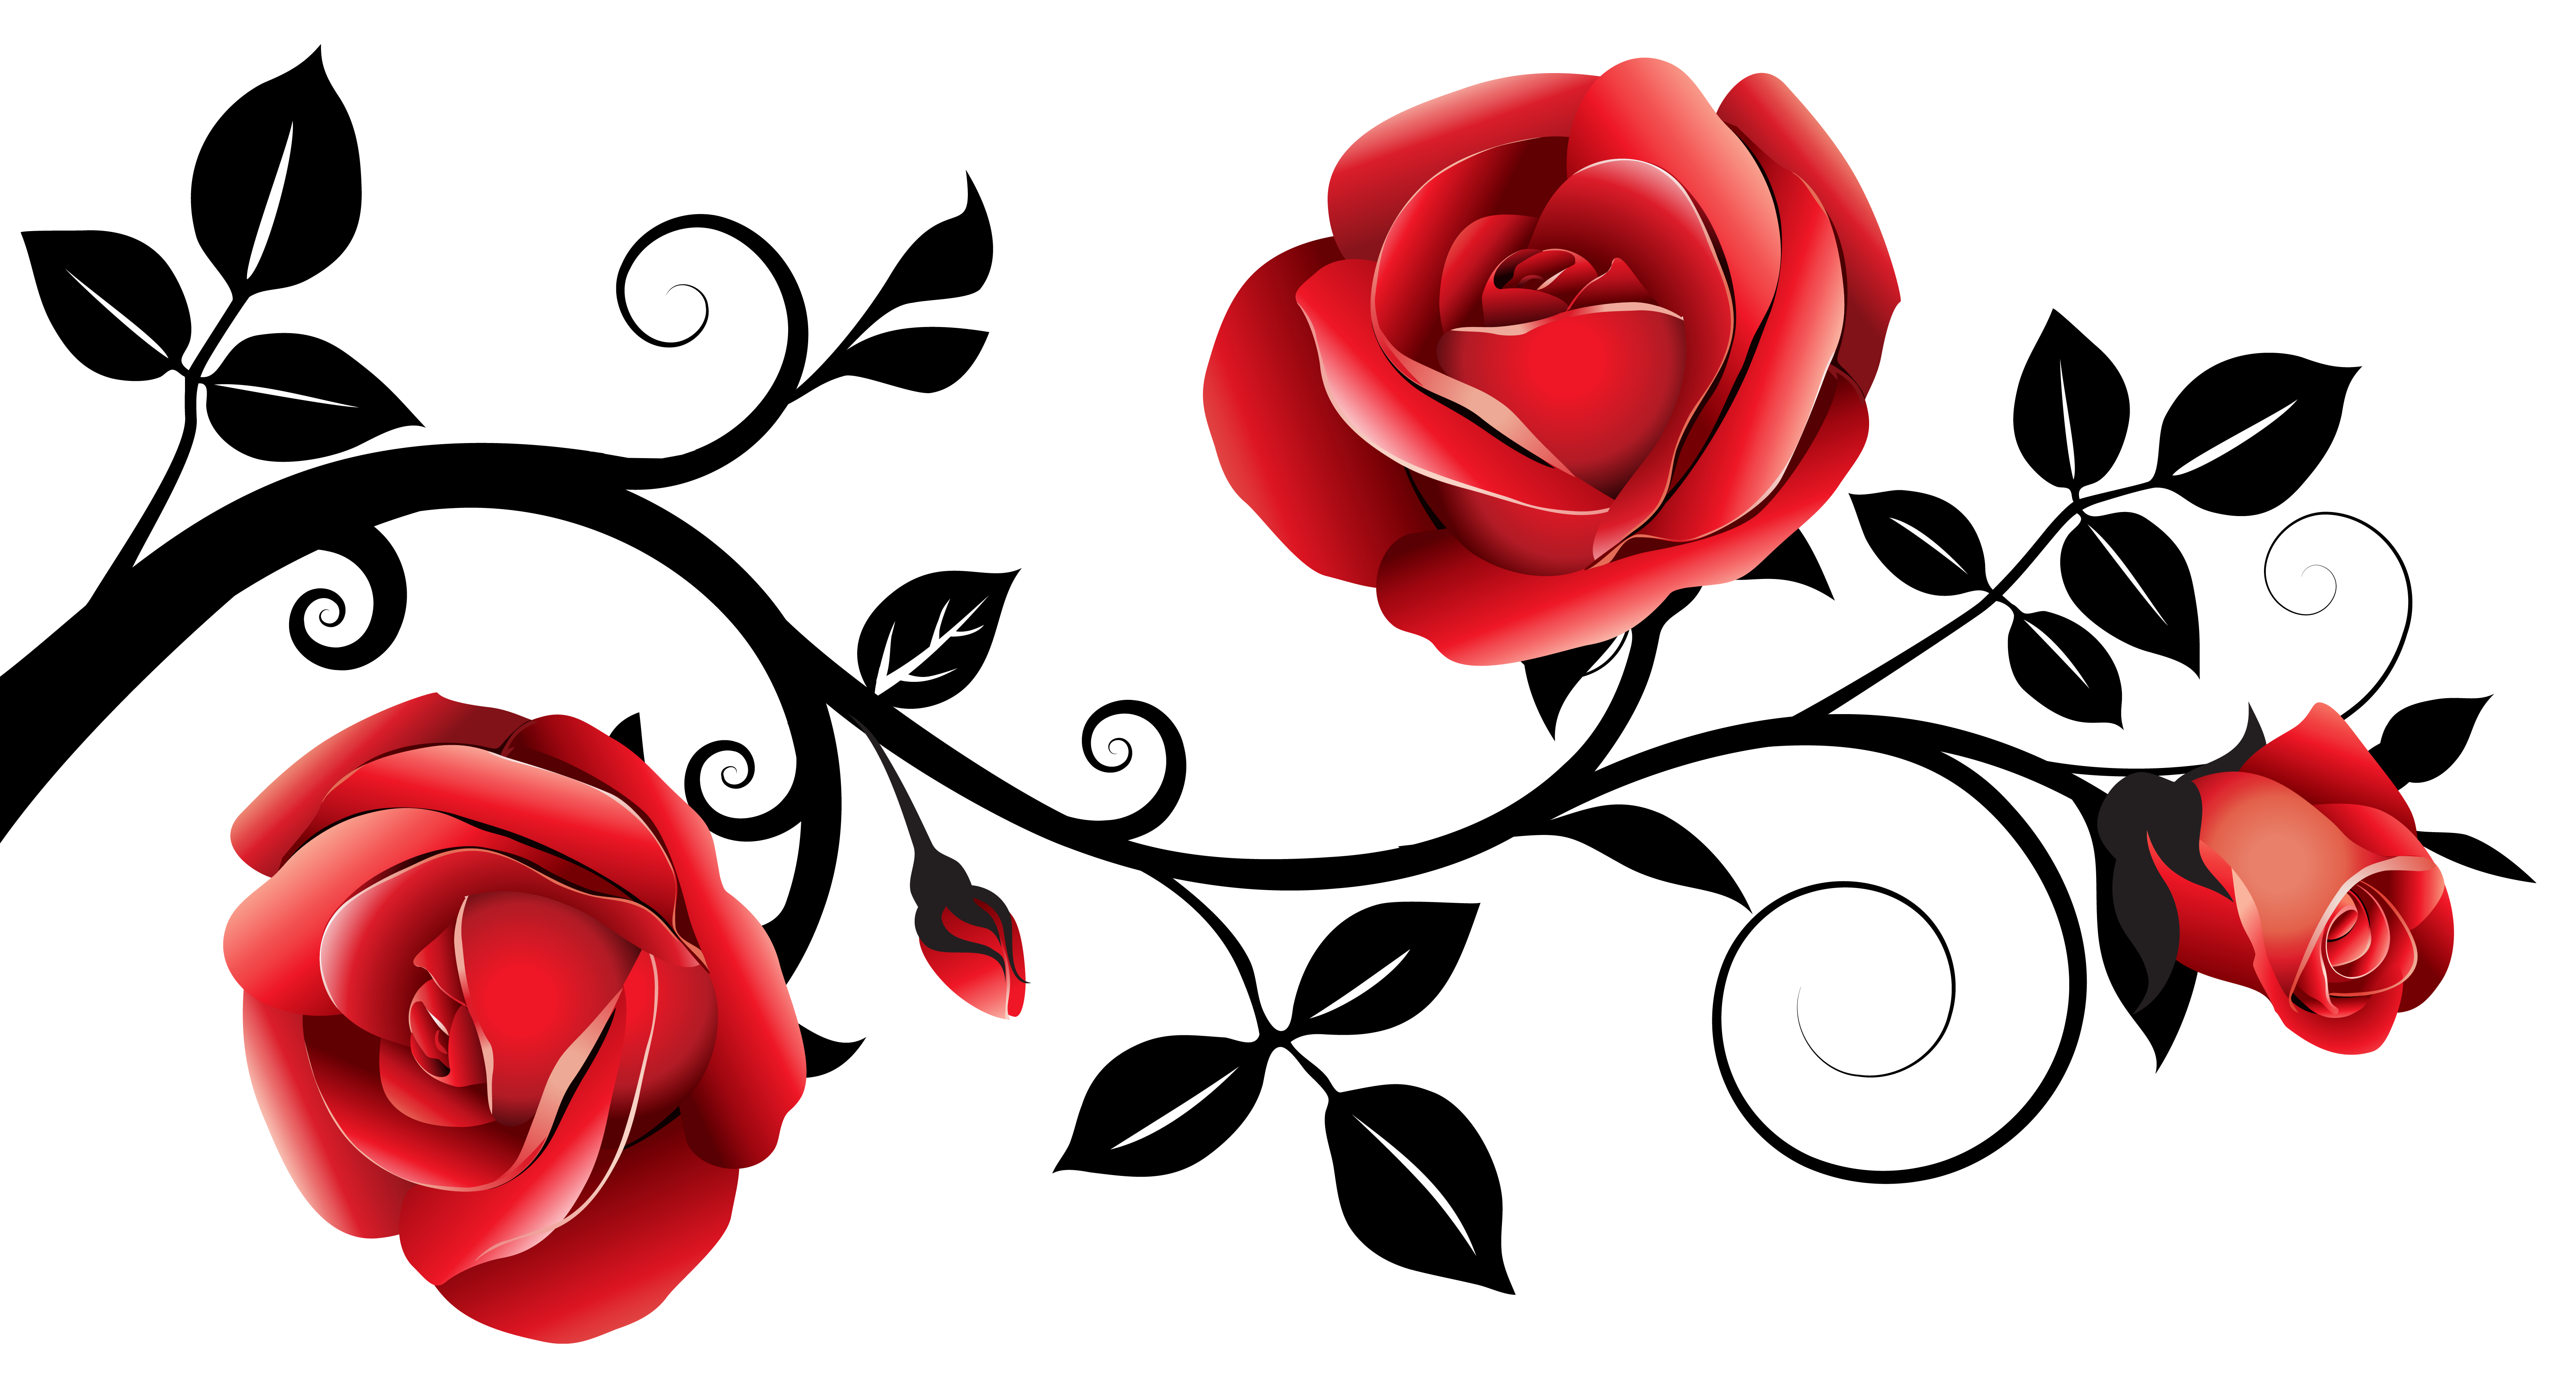 Clipart of rose flower image free Red and Black Decorative Roses PNG Clipart Image | Gallery ... image free